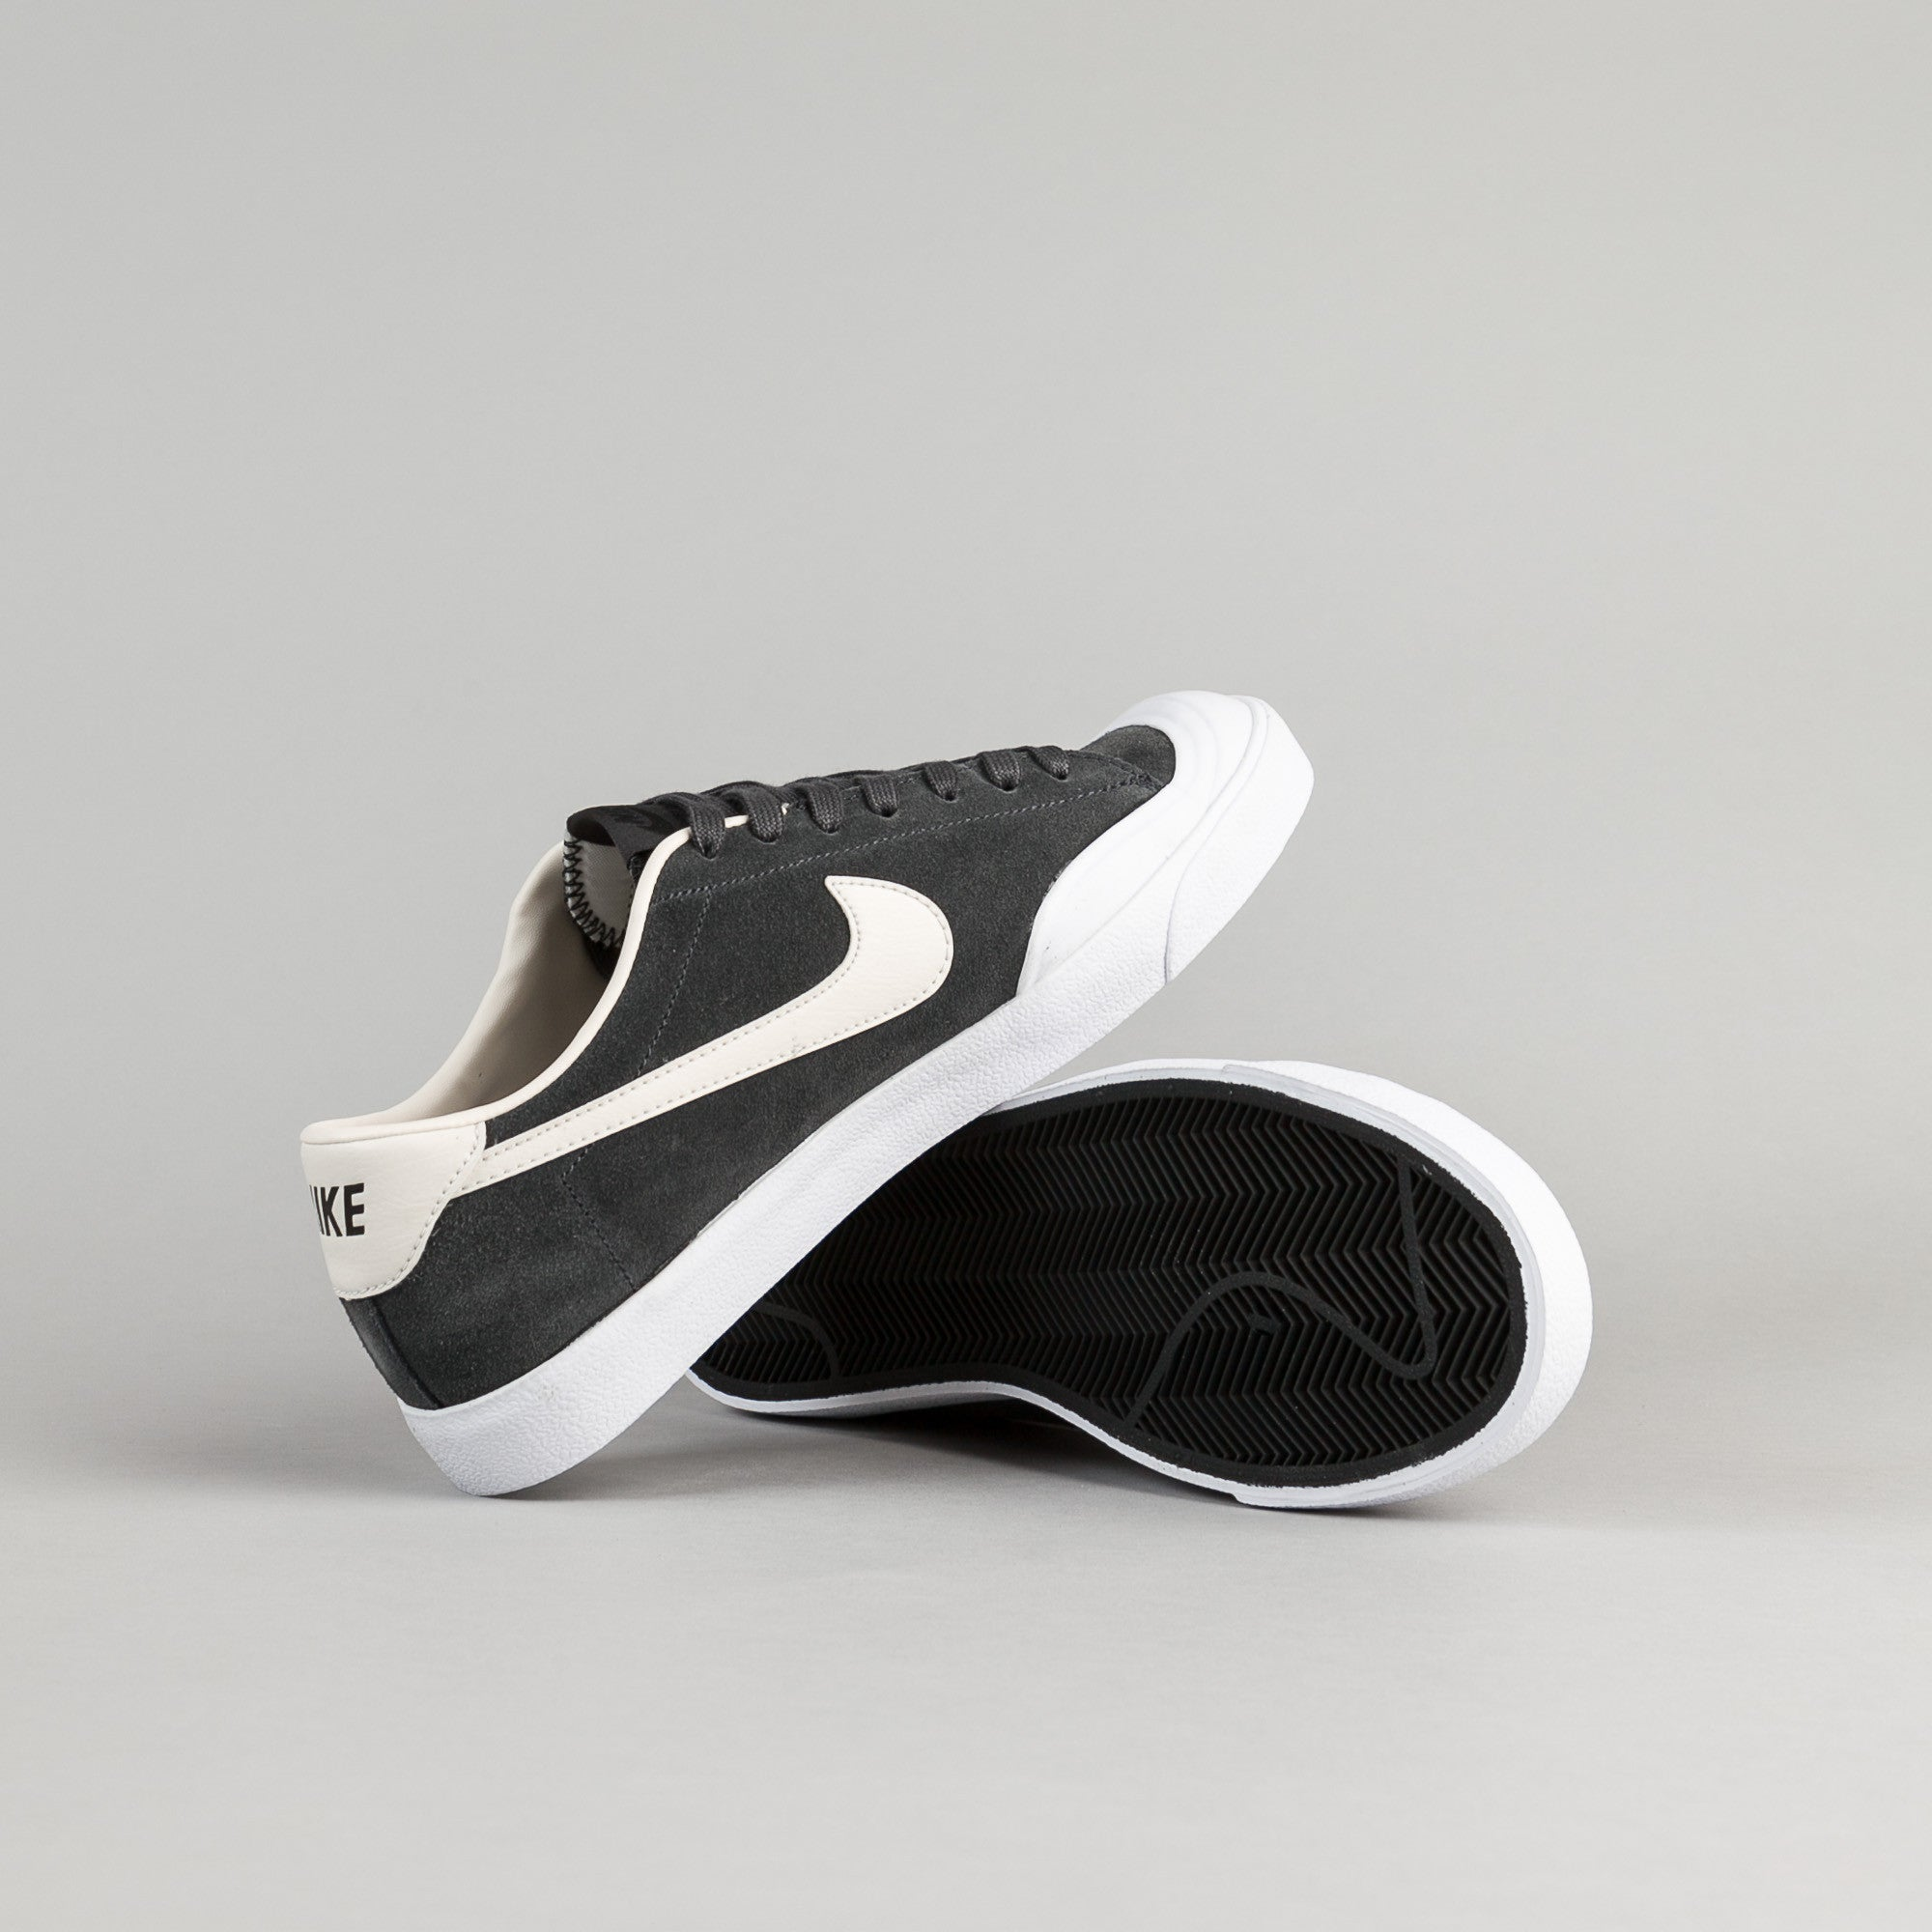 Nike SB All Court CK Shoes - Anthracite / Phantom - White - Black